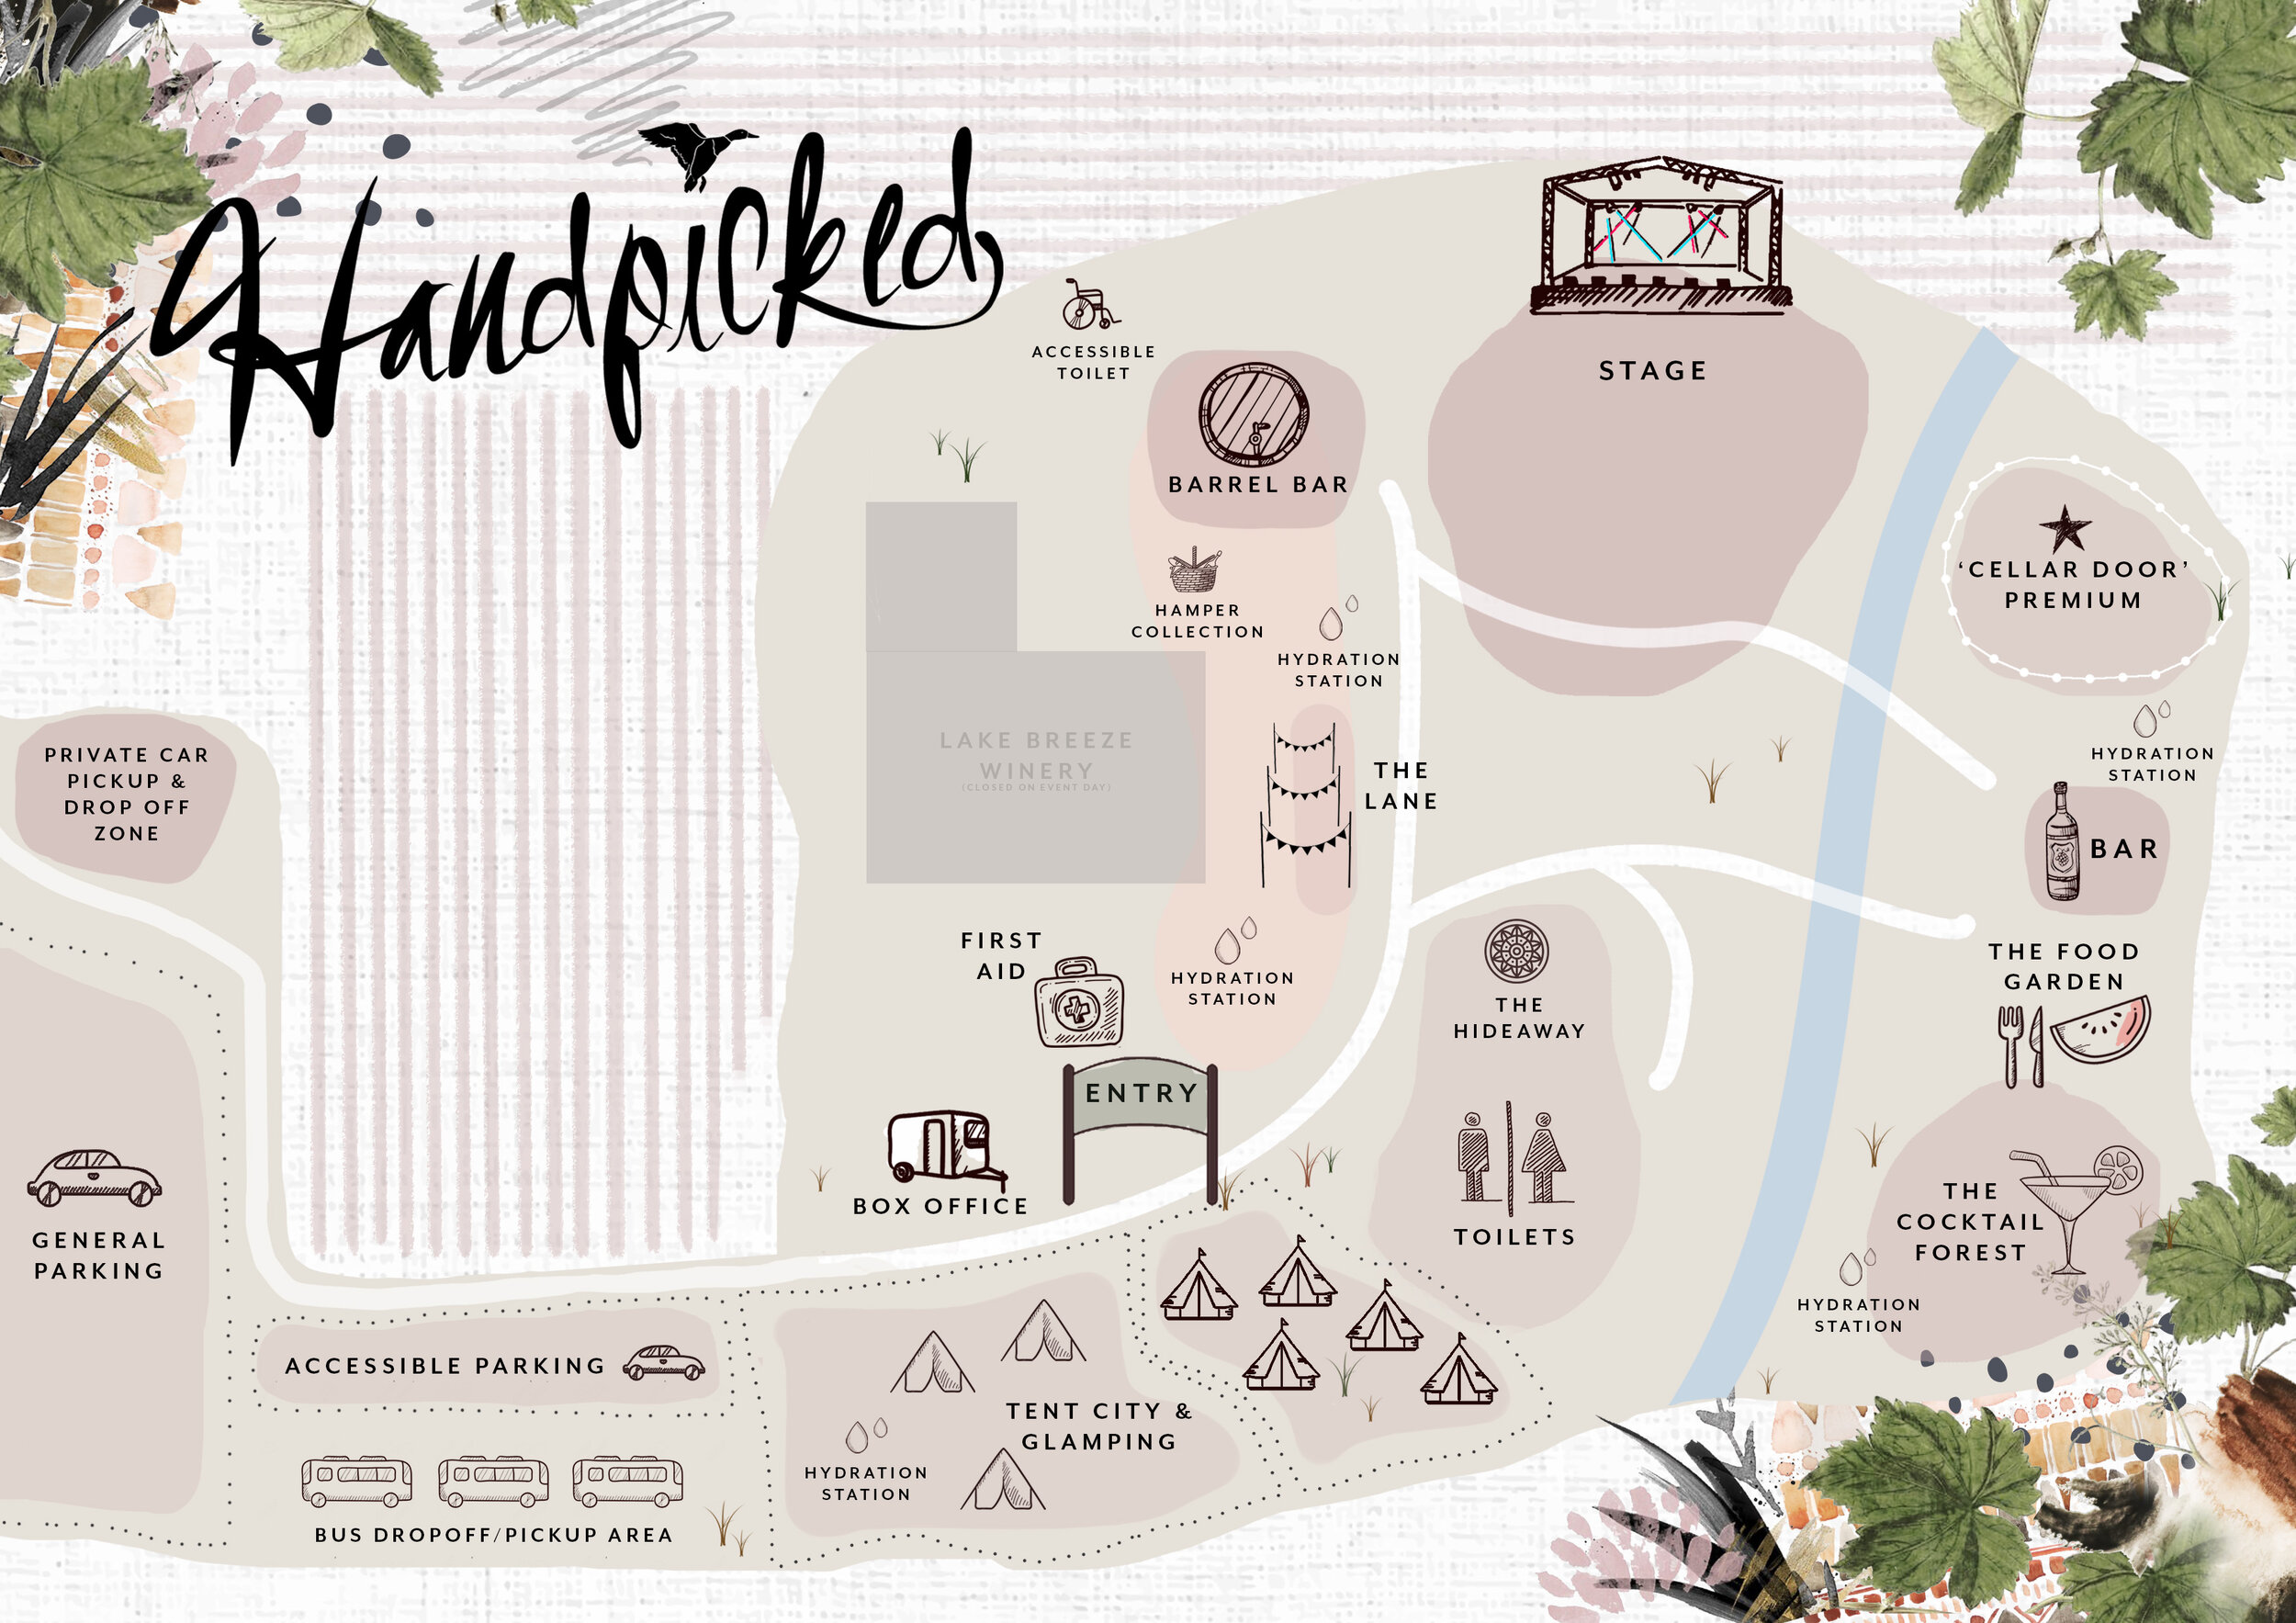 Handpicked Site Map 2019.jpg